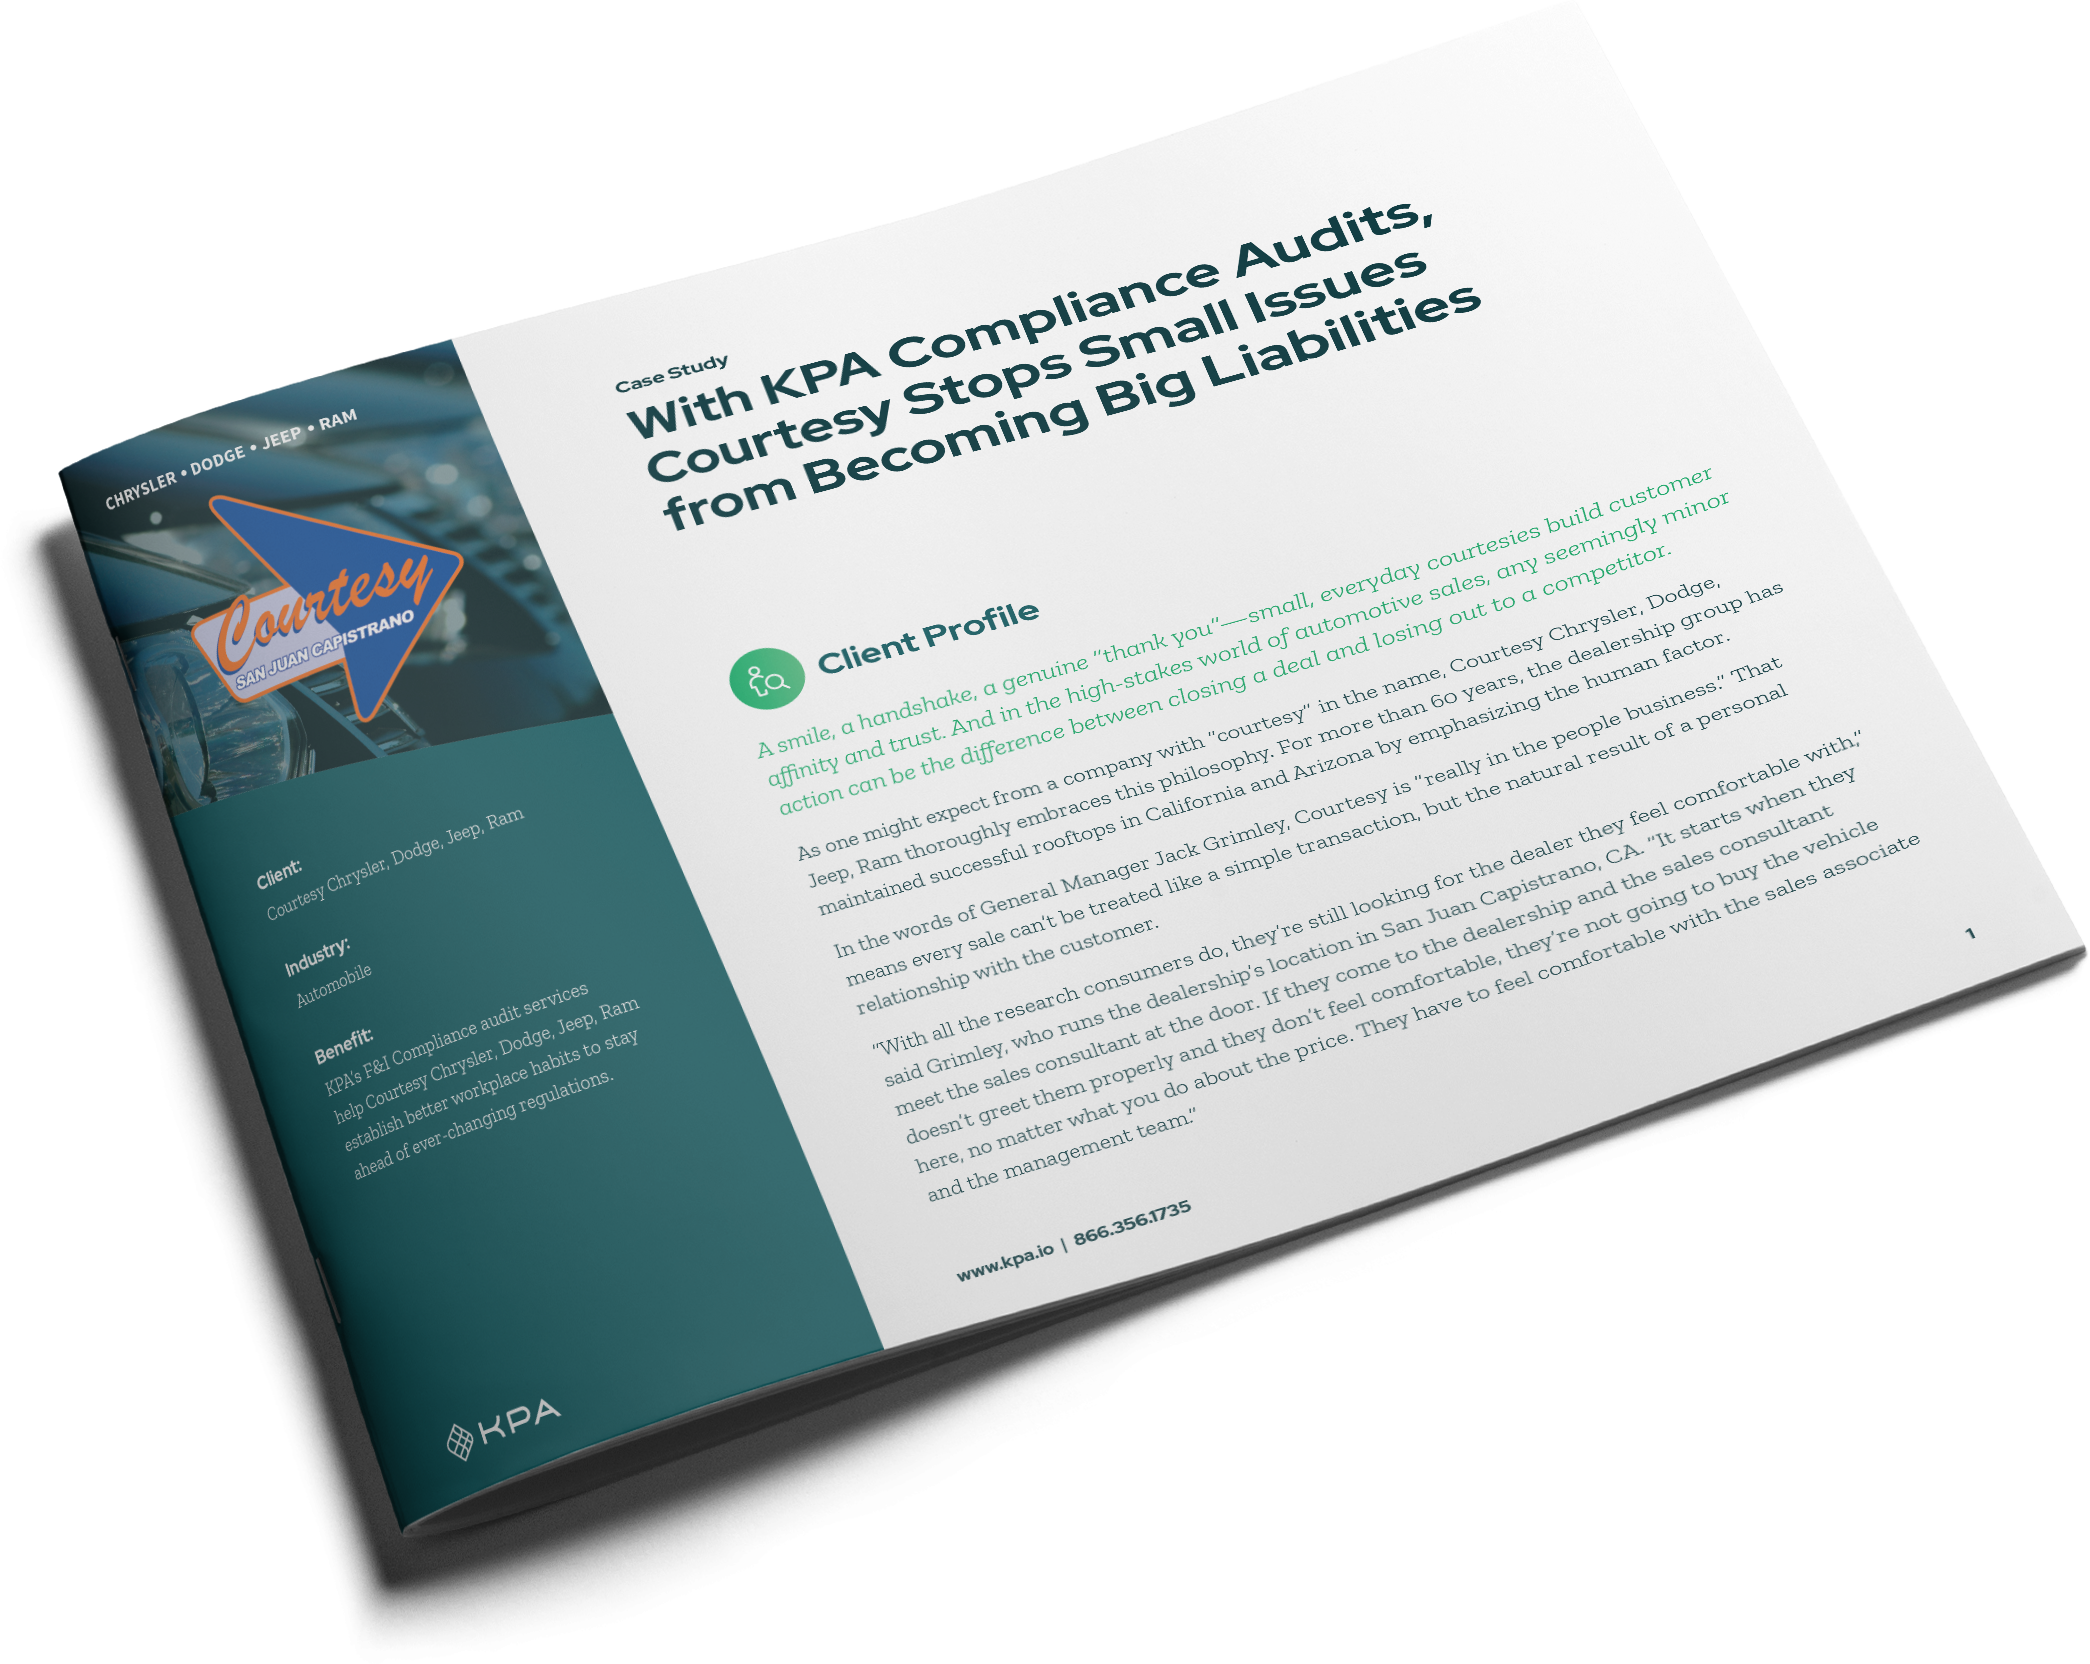 Case Study with KPA Compliance Audits